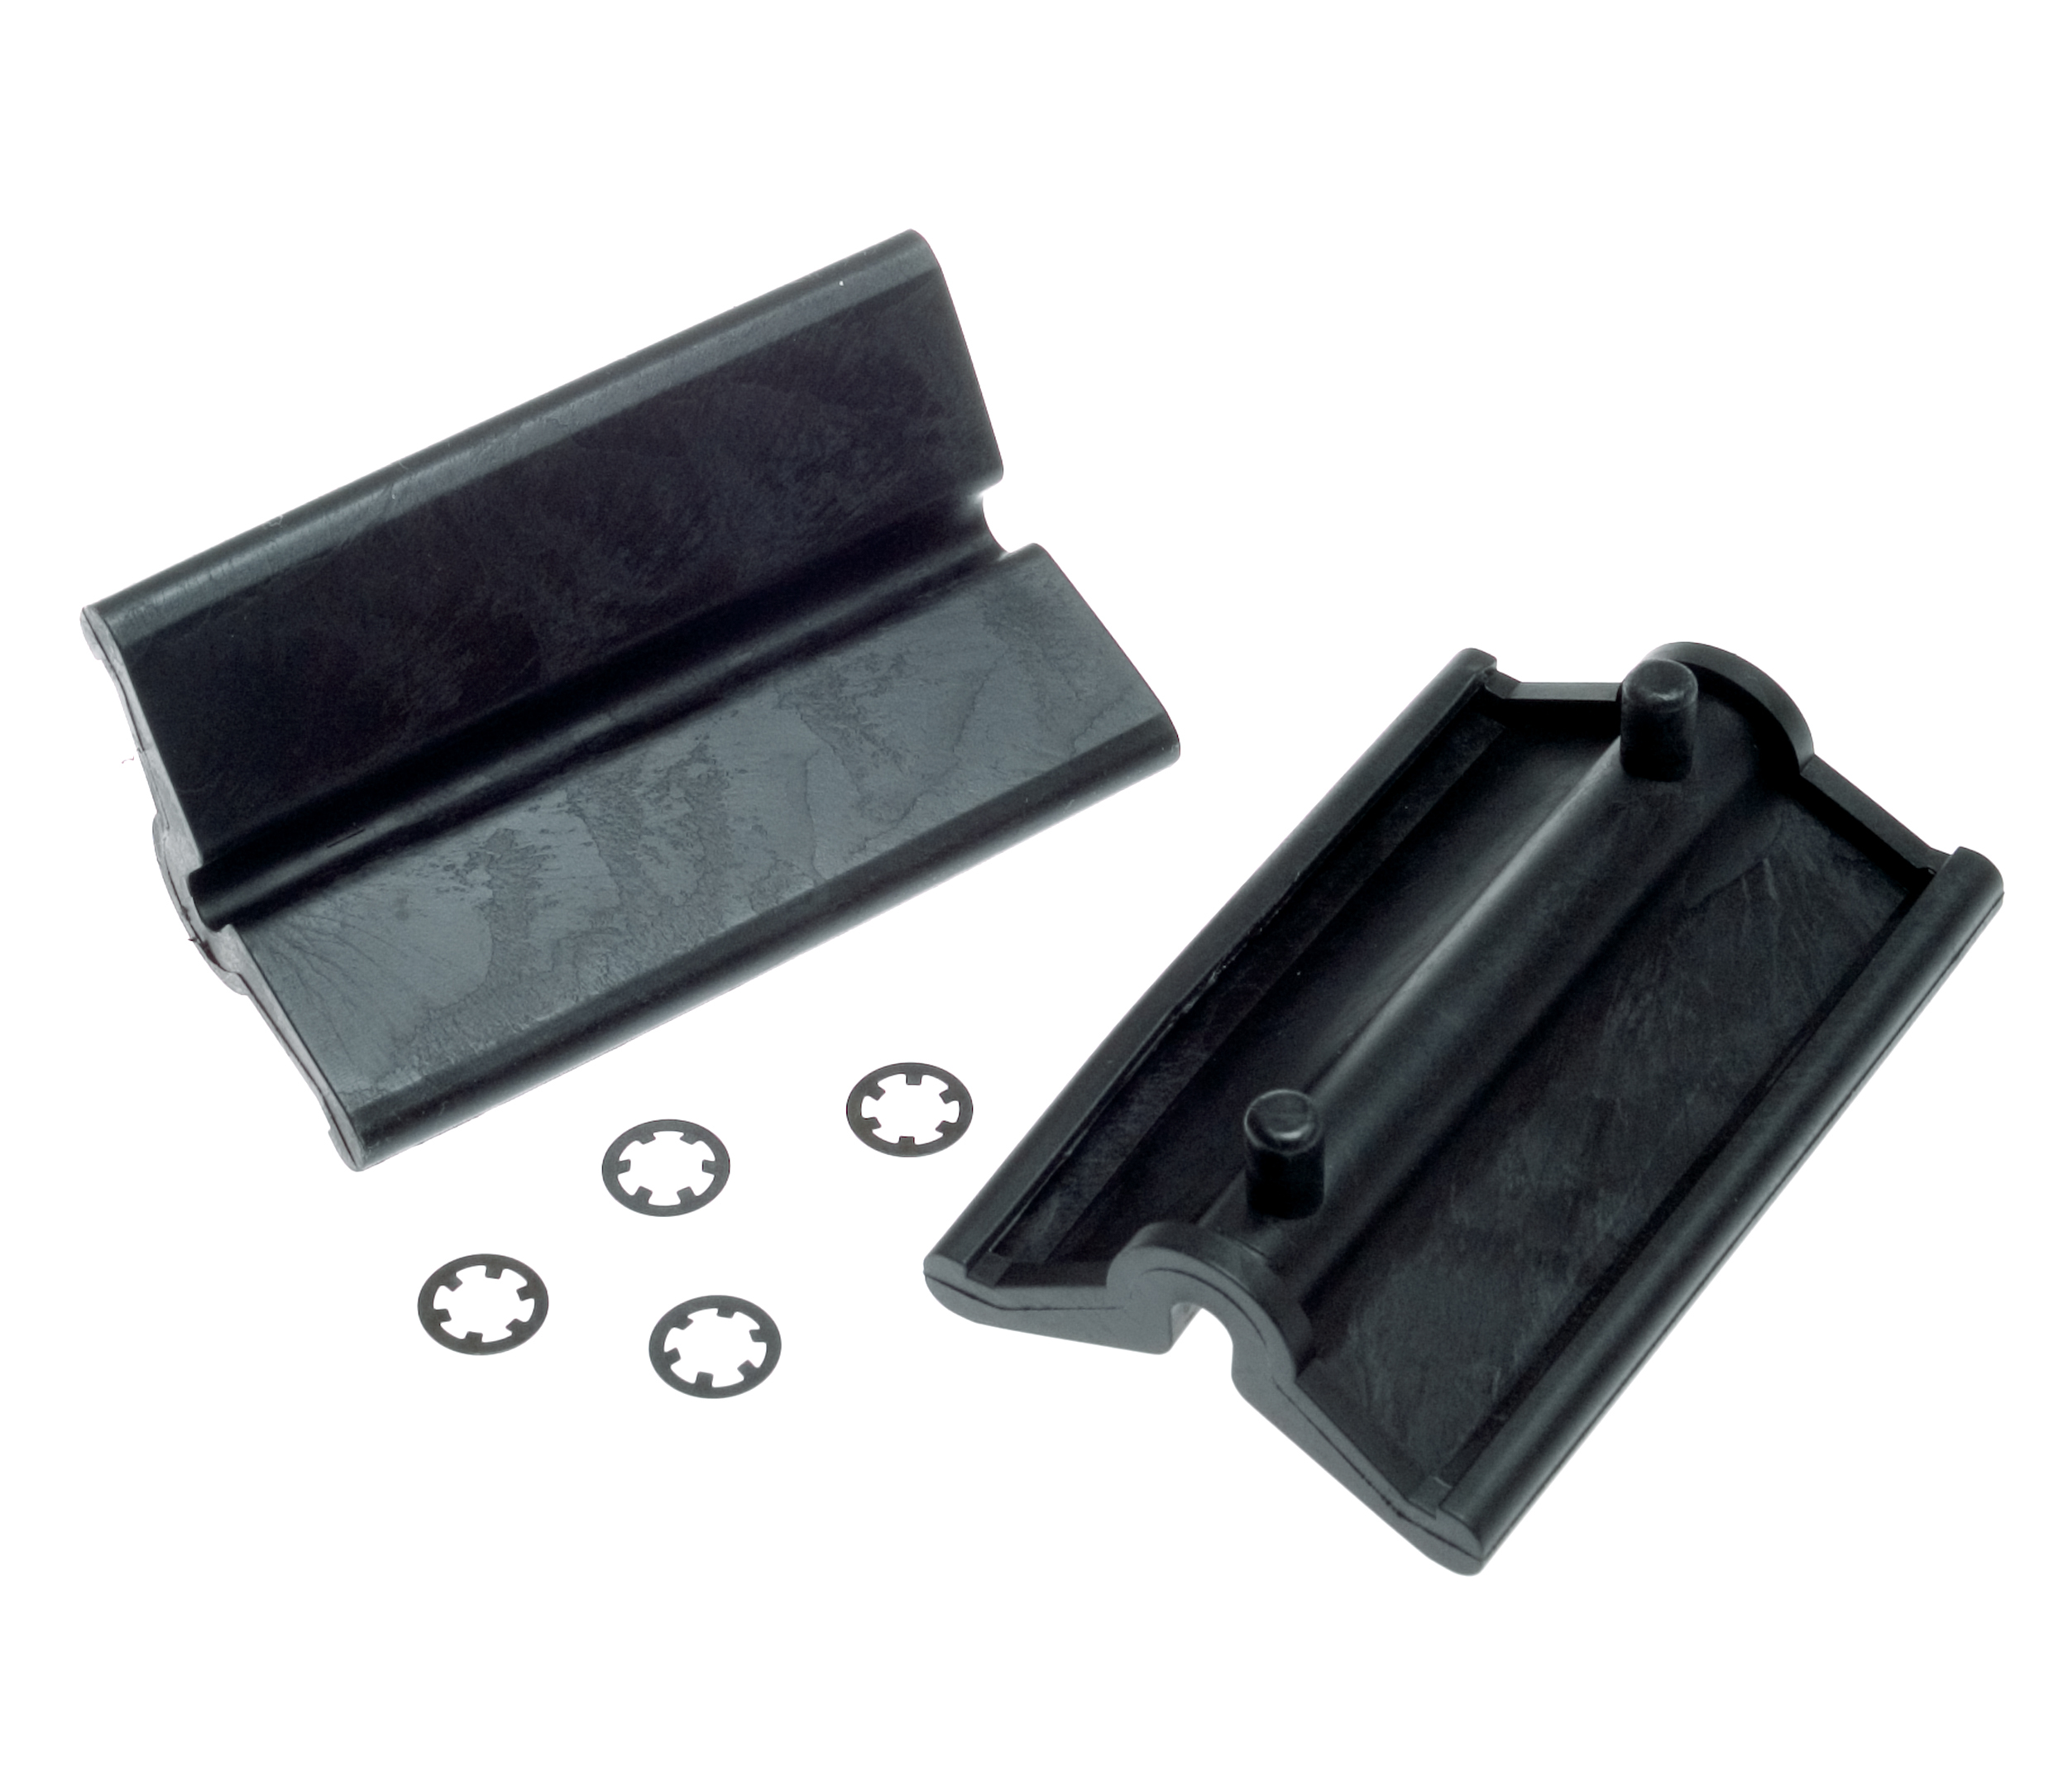 The Park Tool 1002 Replacement Jaw Covers